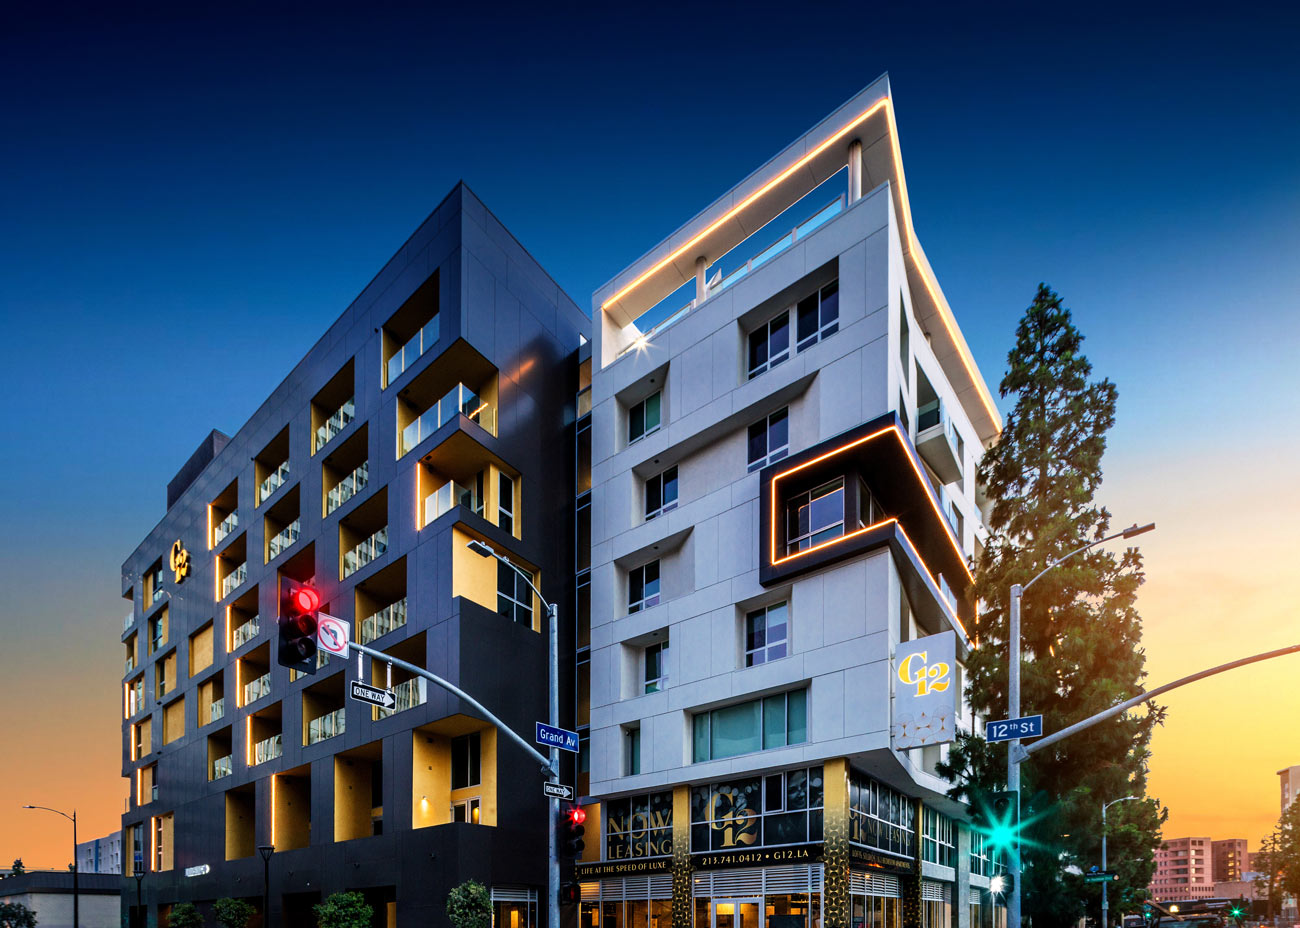 G12 & OLiVE Apartments